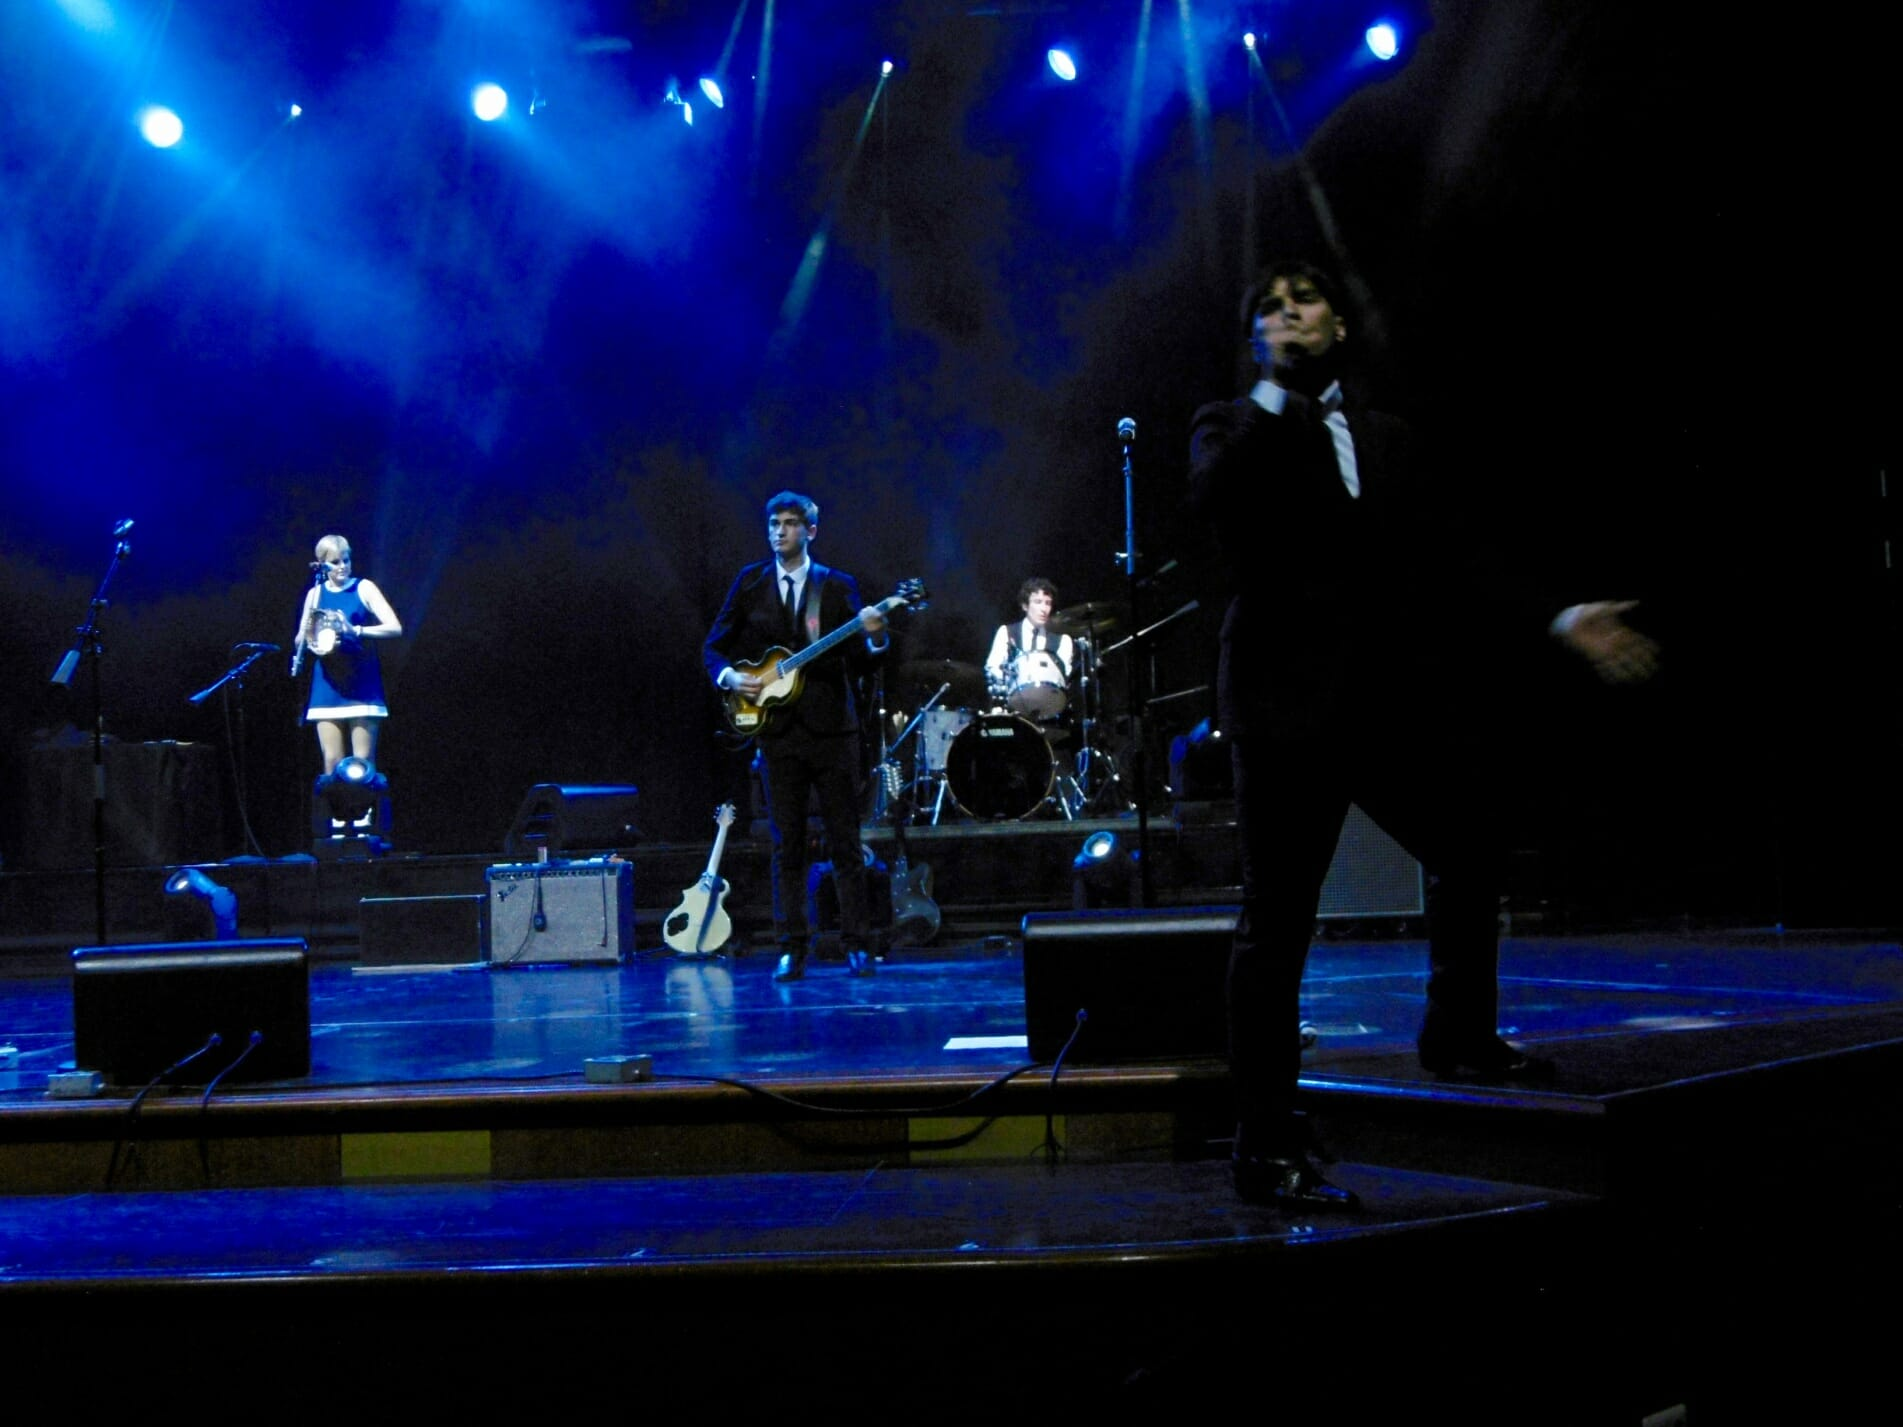 1960s show, sixties tribute band, 60s tribute band, south west tribute band, london 60s tribute, 60s tribute show, the zoots